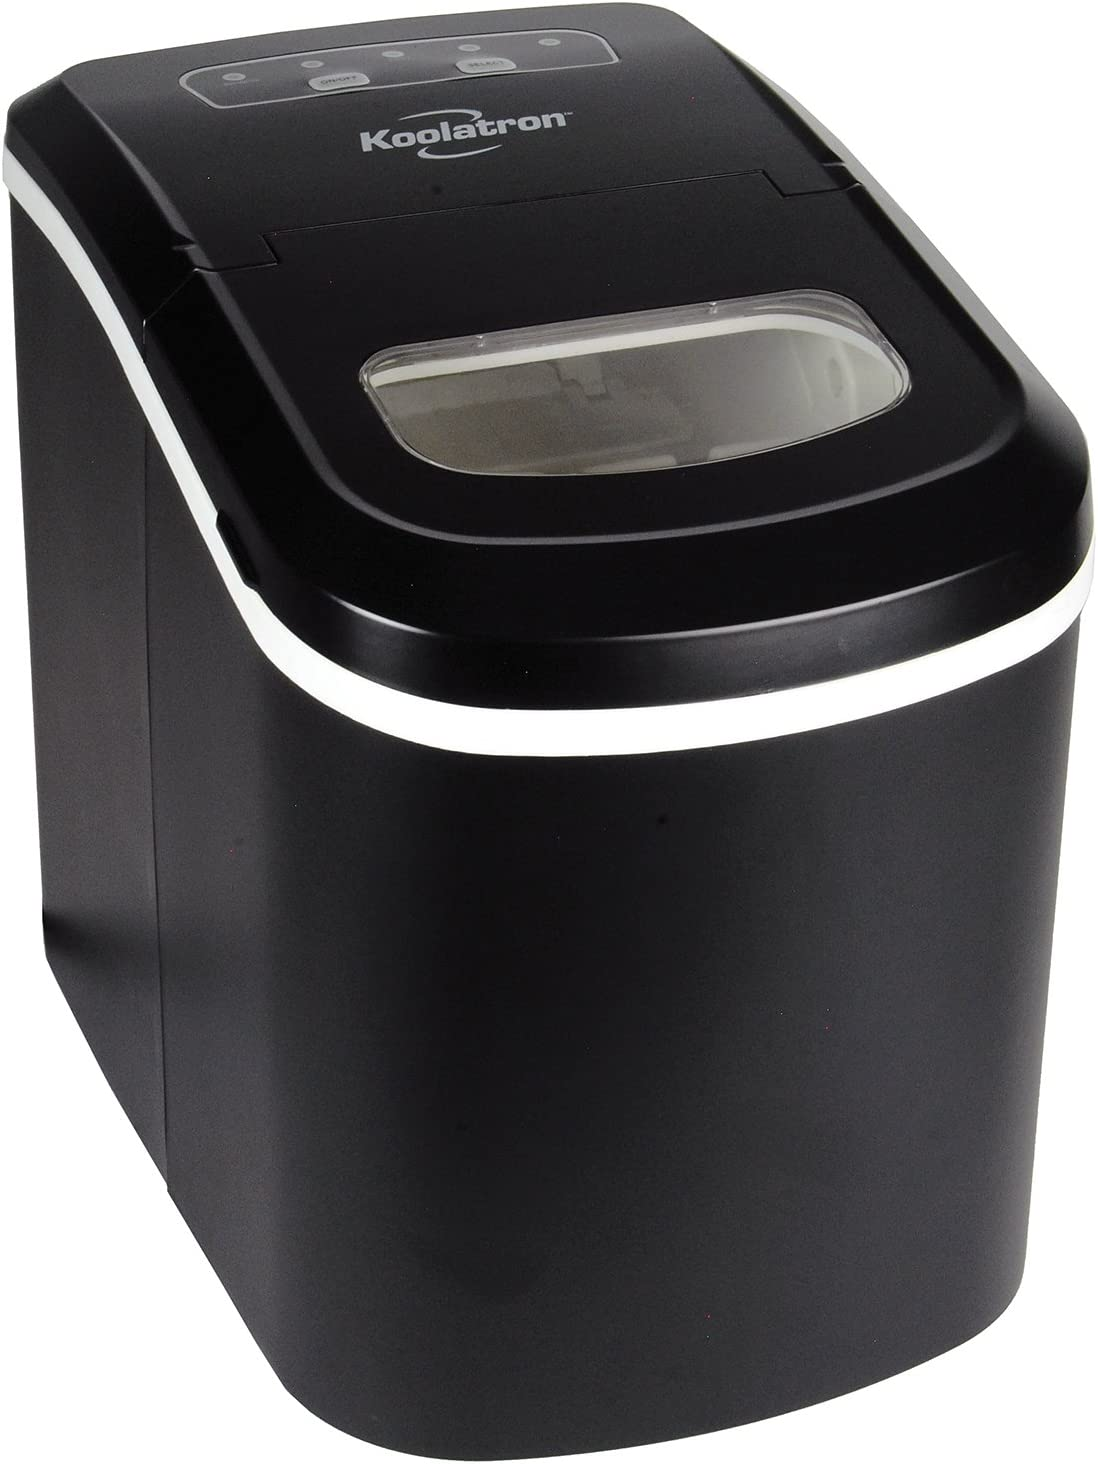 Koolatron KIM-26 Ice Maker, Black